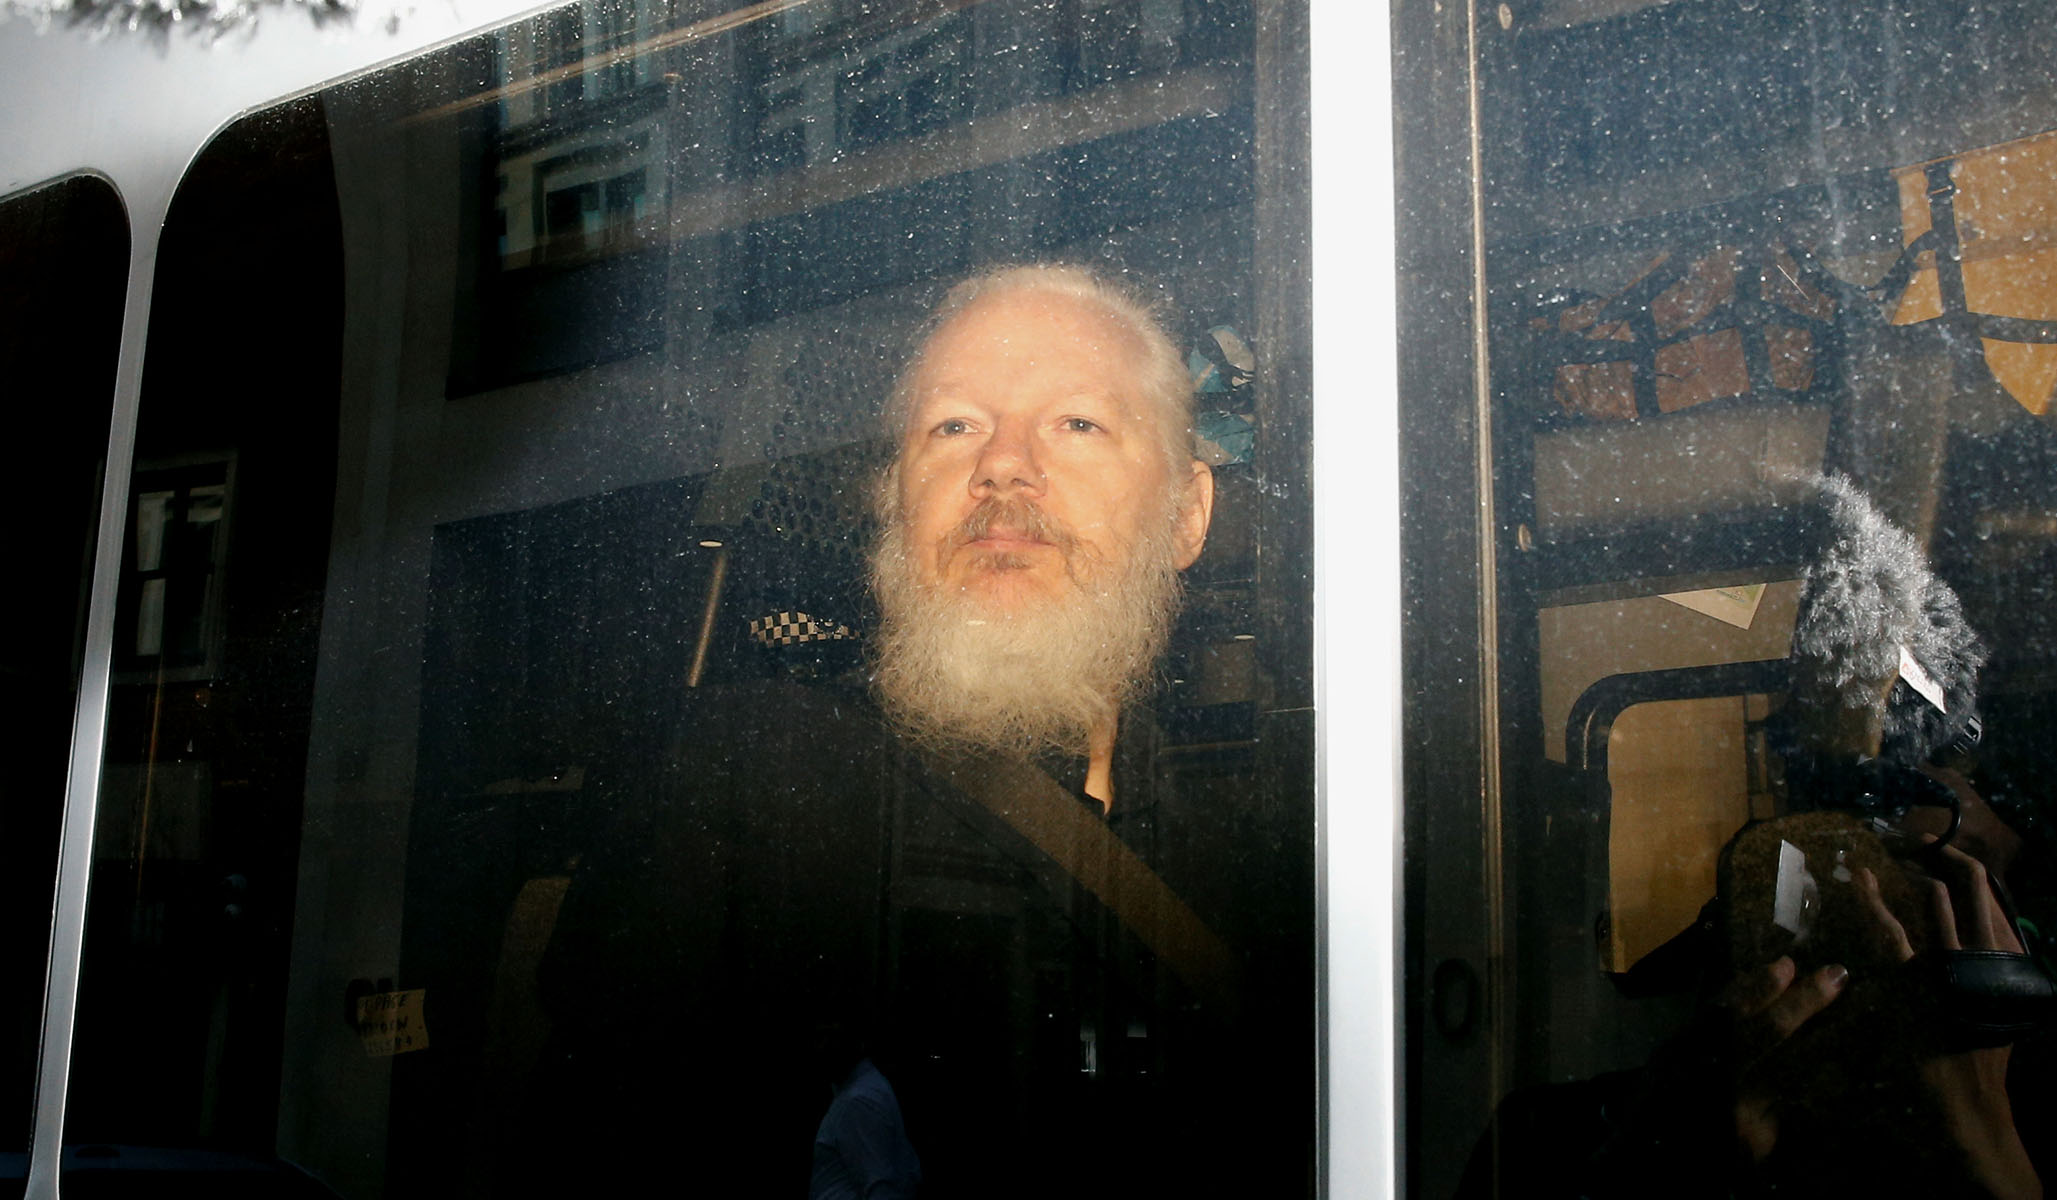 nationalreview.com - Mairead McArdle - WikiLeaks Founder Julian Assange Indicted on 18 Counts of Conspiracy